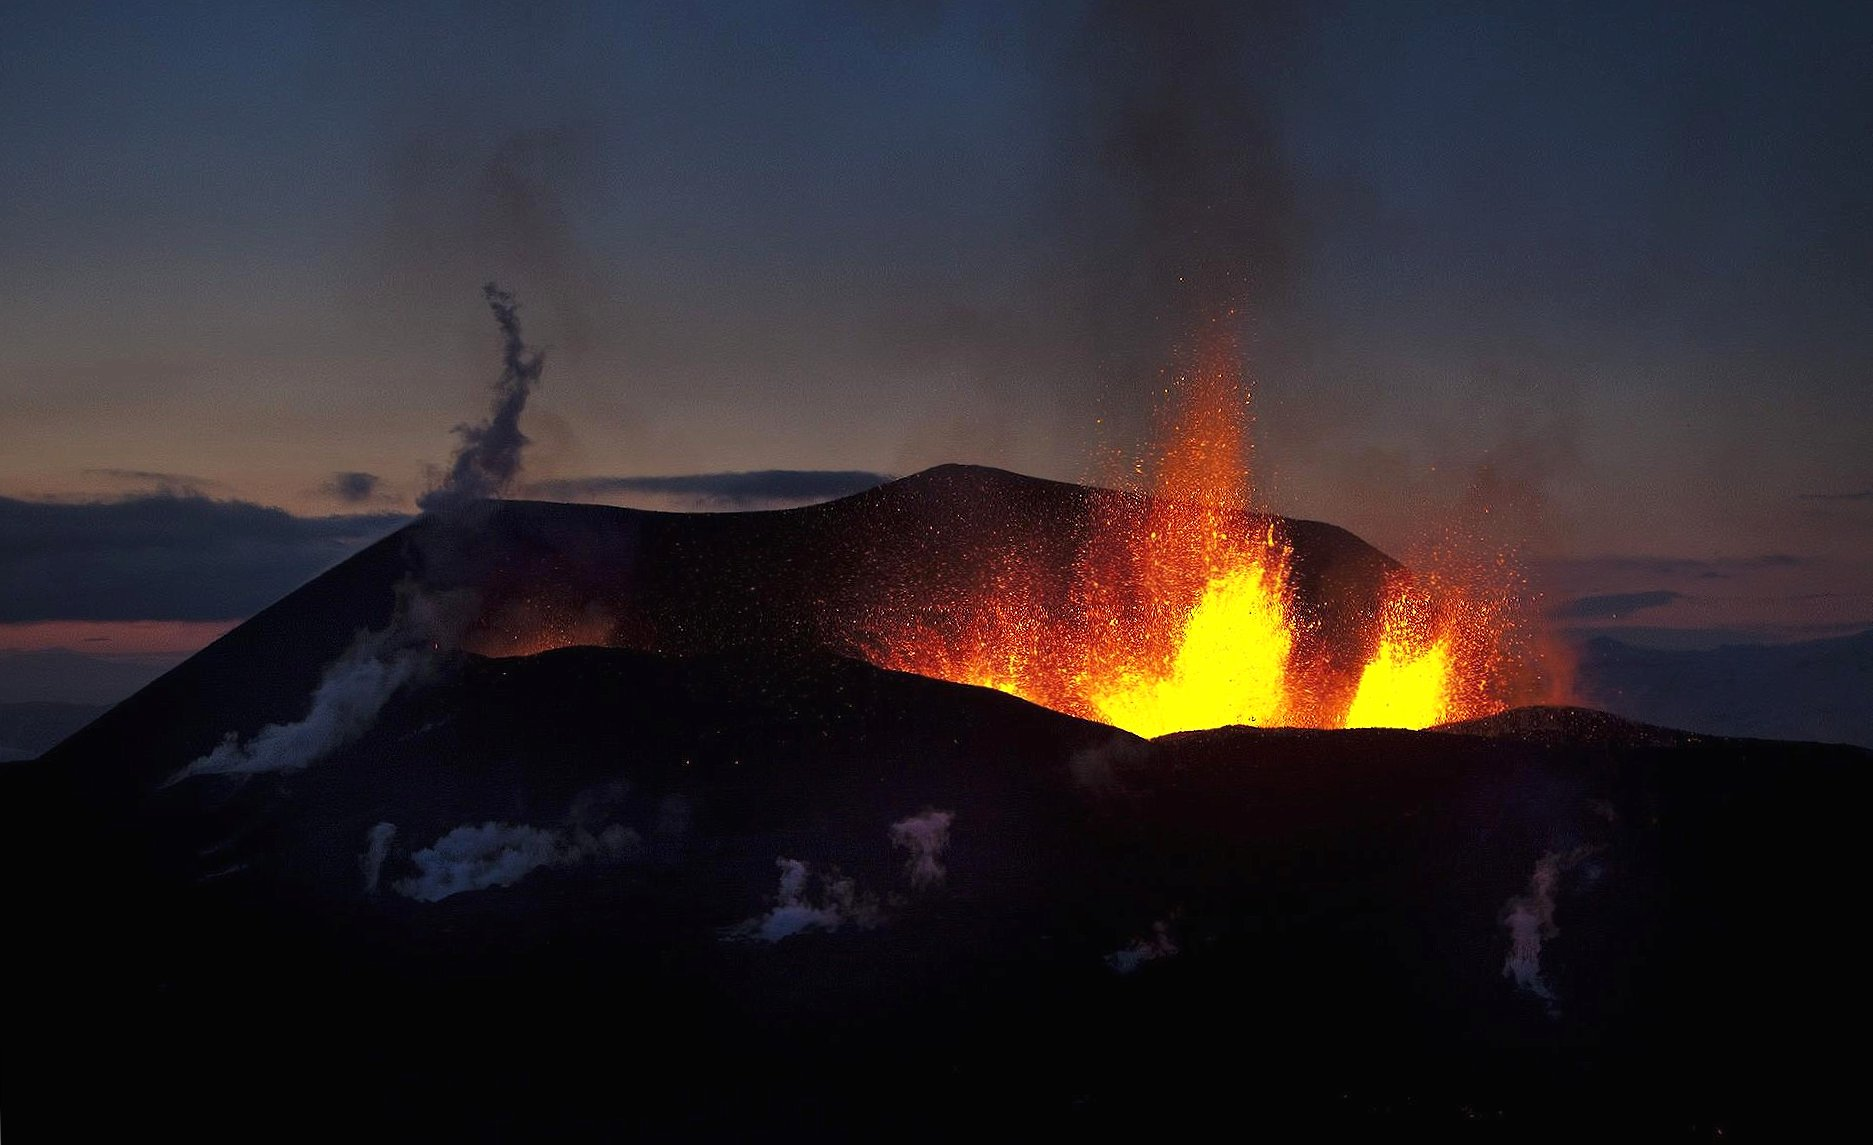 Volcano explosion wallpapers HD quality